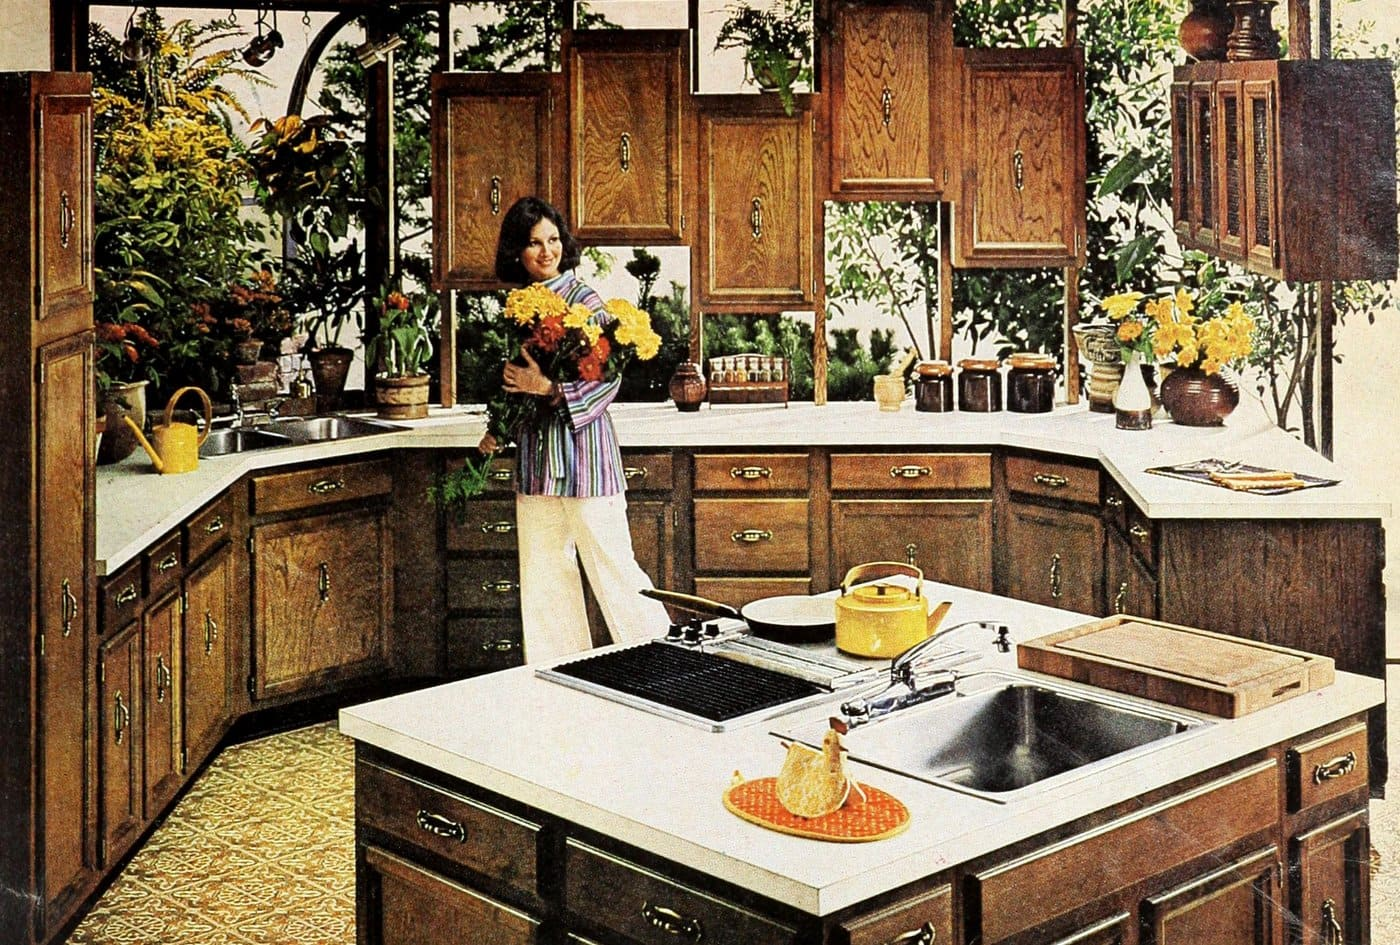 1976 kitchen design with wooden cabinetry and central island with sink and range